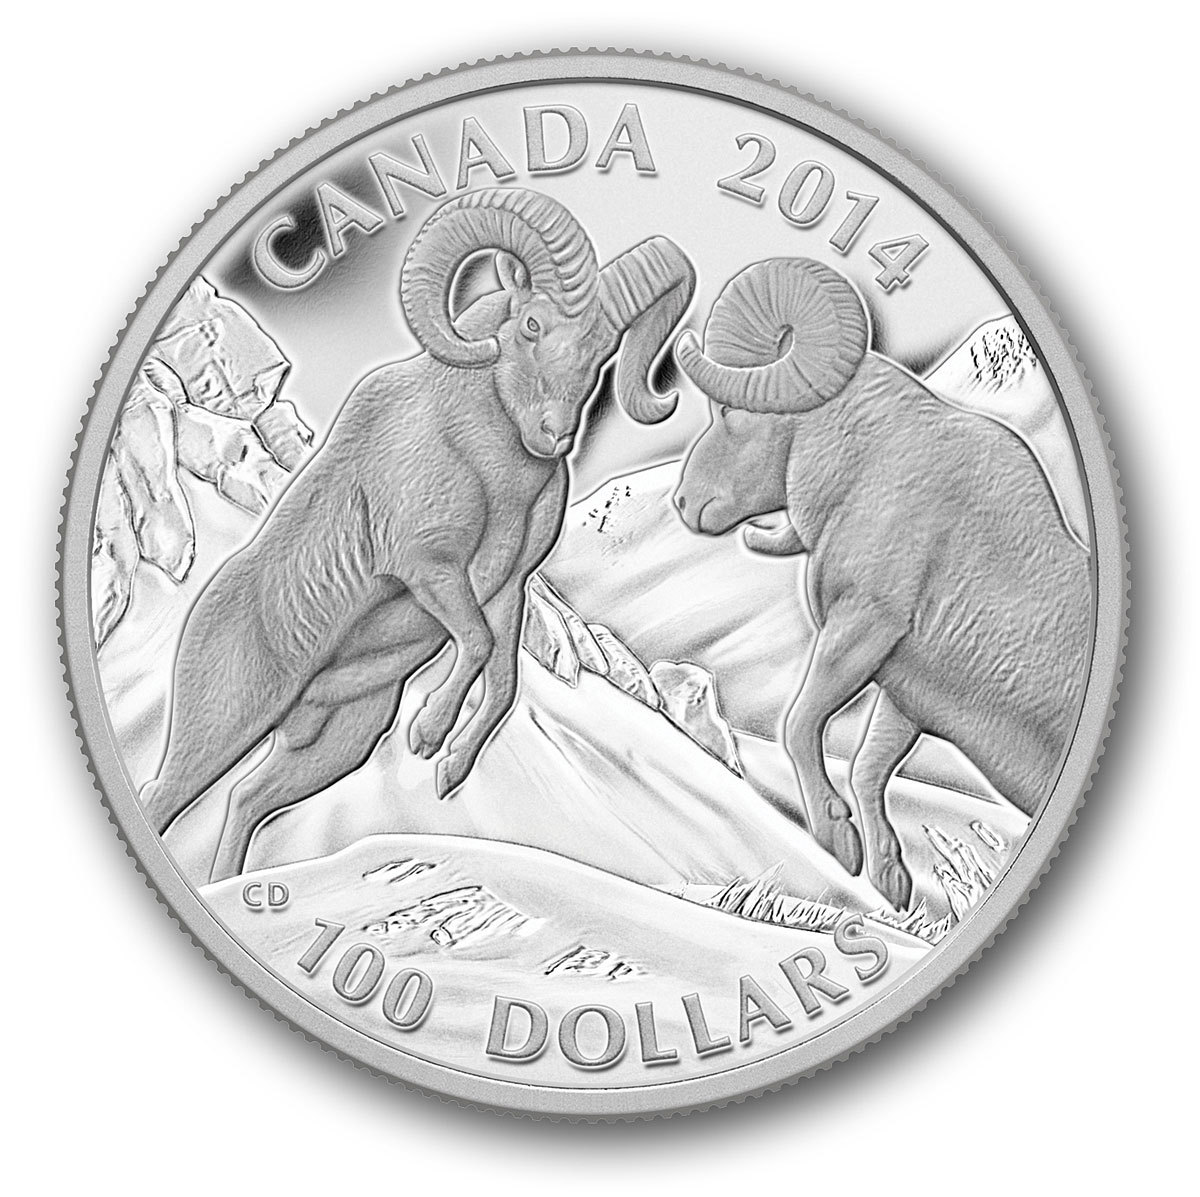 CANADA 2014 $100 Fine Silver Commemorative Coin - Wildlife In Motion - Bighorn Sheep - $100 for $100 - #4 In Series